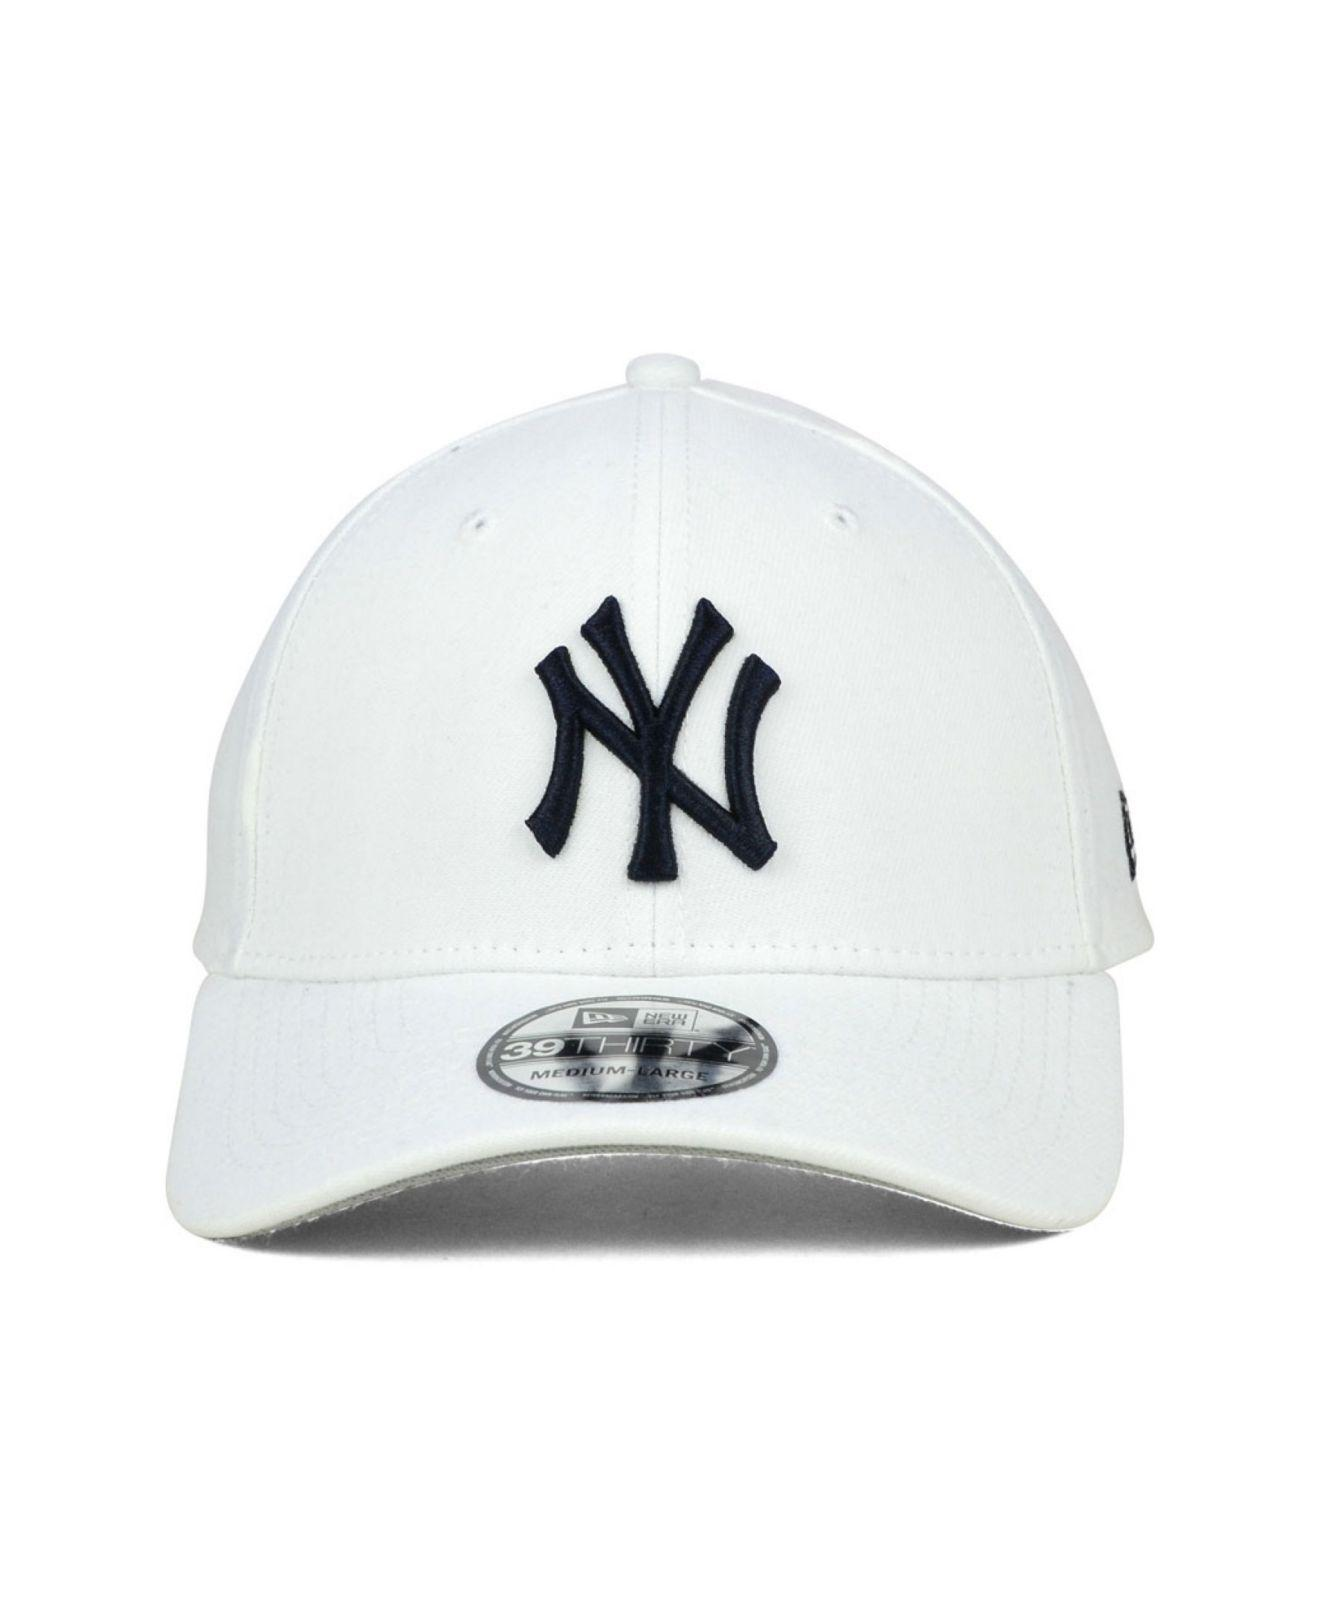 38a49ad0d84 ... closeout lyst ktz new york yankees core classic 39thirty cap in white  for men f0519 6fb38